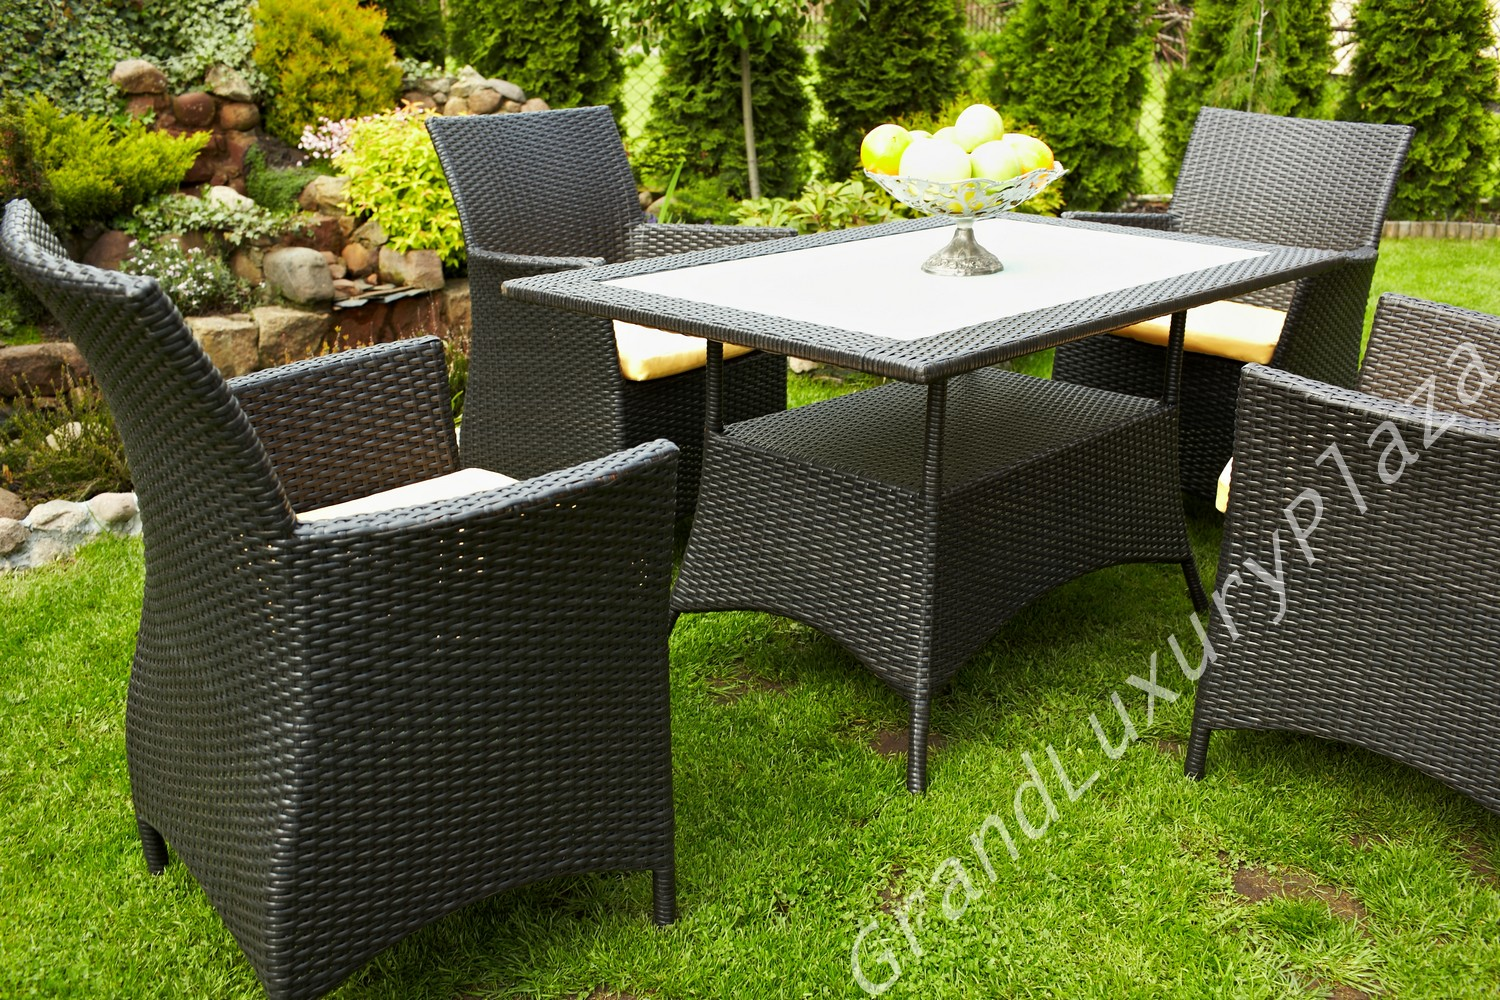 gartenm bel rattan restaurantm bel rattan m bel polyrattan torino 3049 stuhl ebay. Black Bedroom Furniture Sets. Home Design Ideas